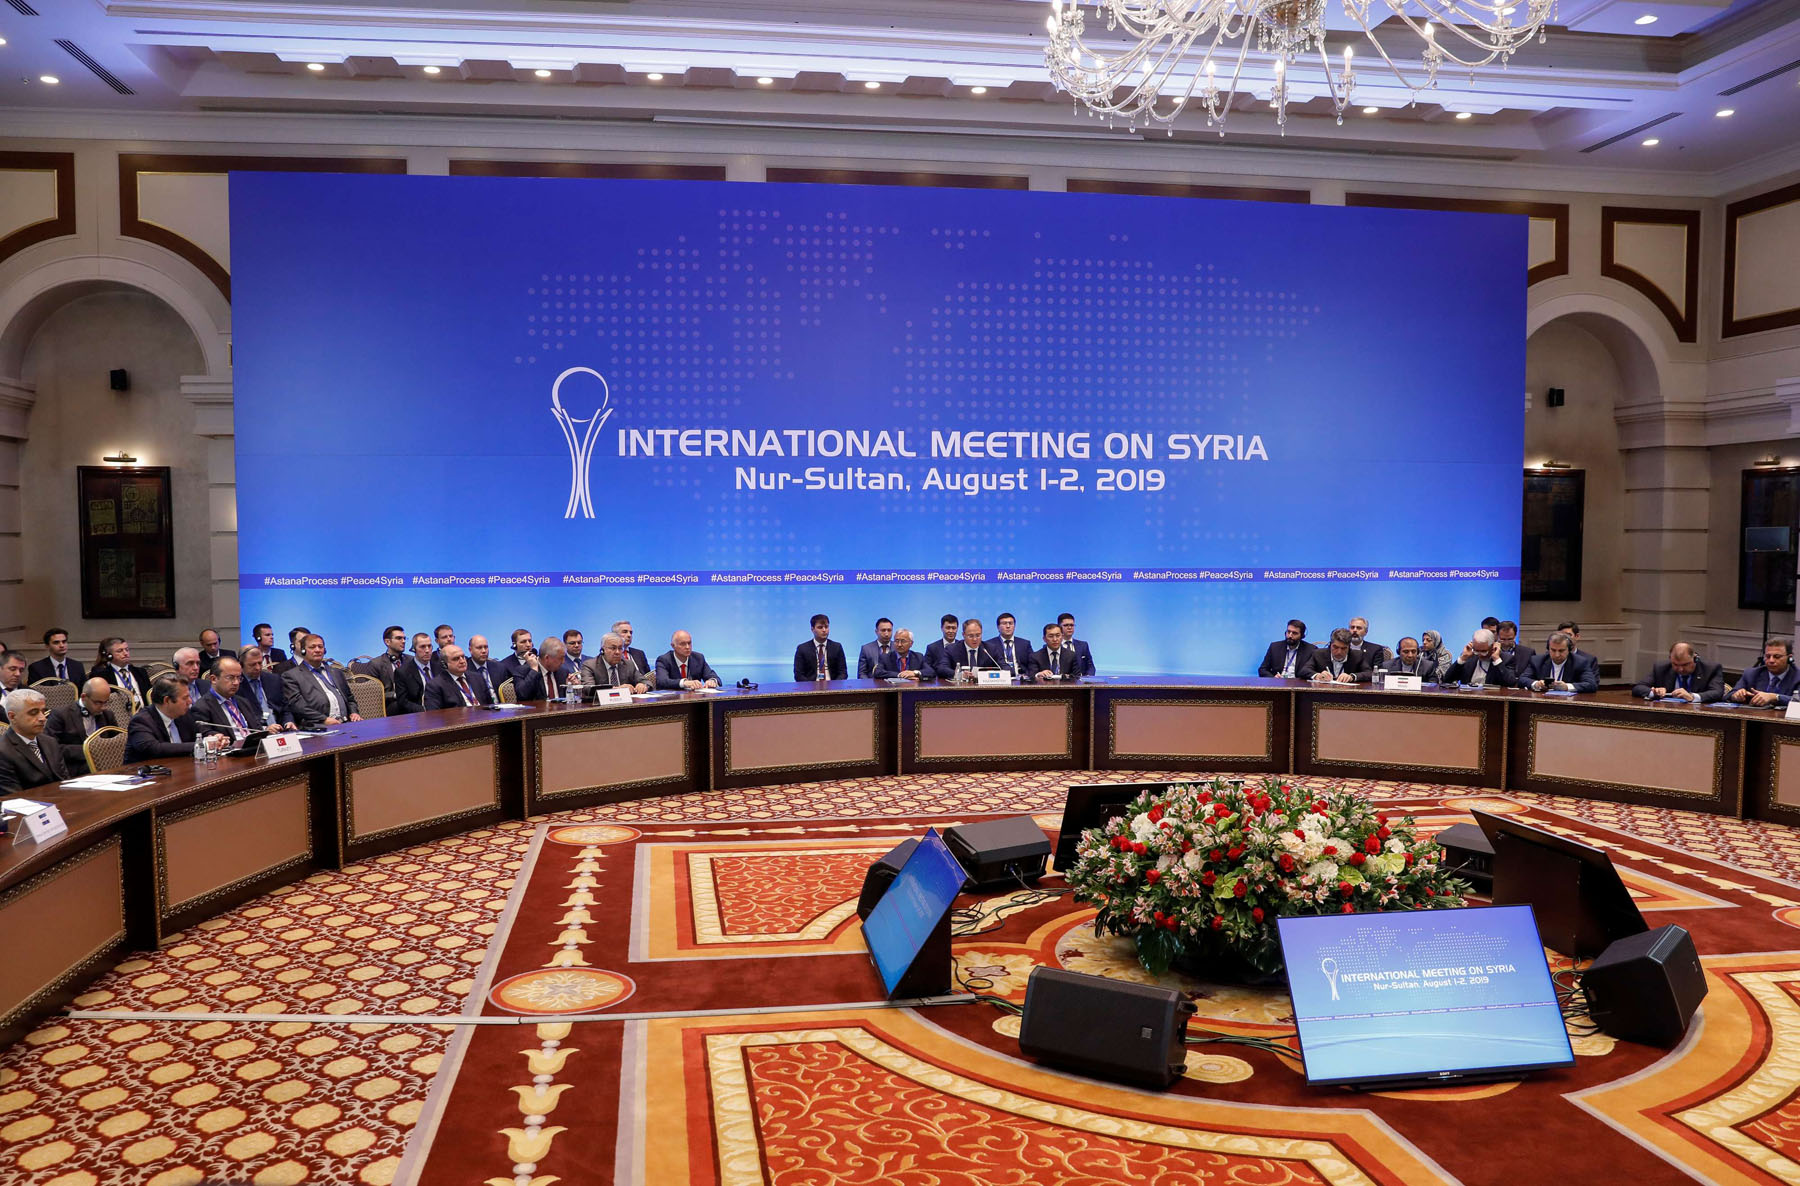 Officials attend a session of the peace talks on Syria in Nur-Sultan, Kazakhstan, August 2. (Reuters)